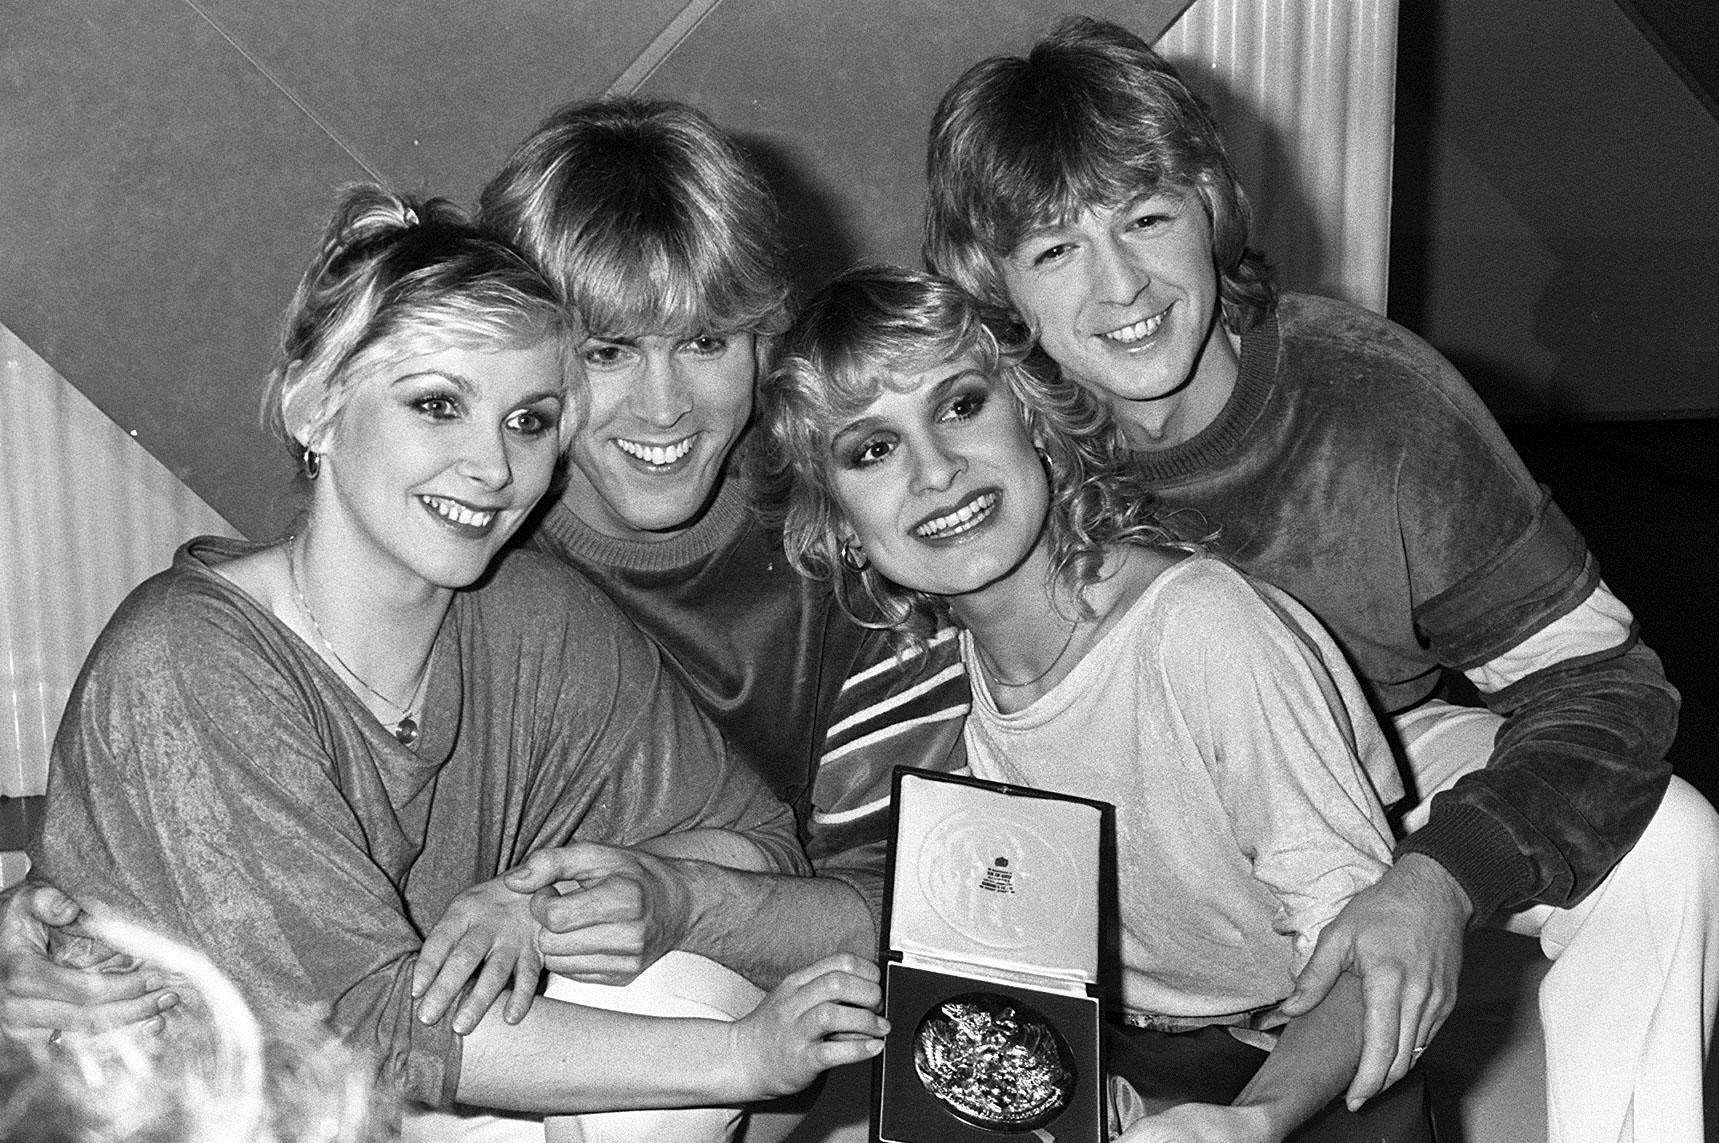 Bucks Fizz following their Eurovision Song Contest victory (from left): Cheryl Baker, Mike Nolan, Jay Aston and Bobby G. Picture: PA